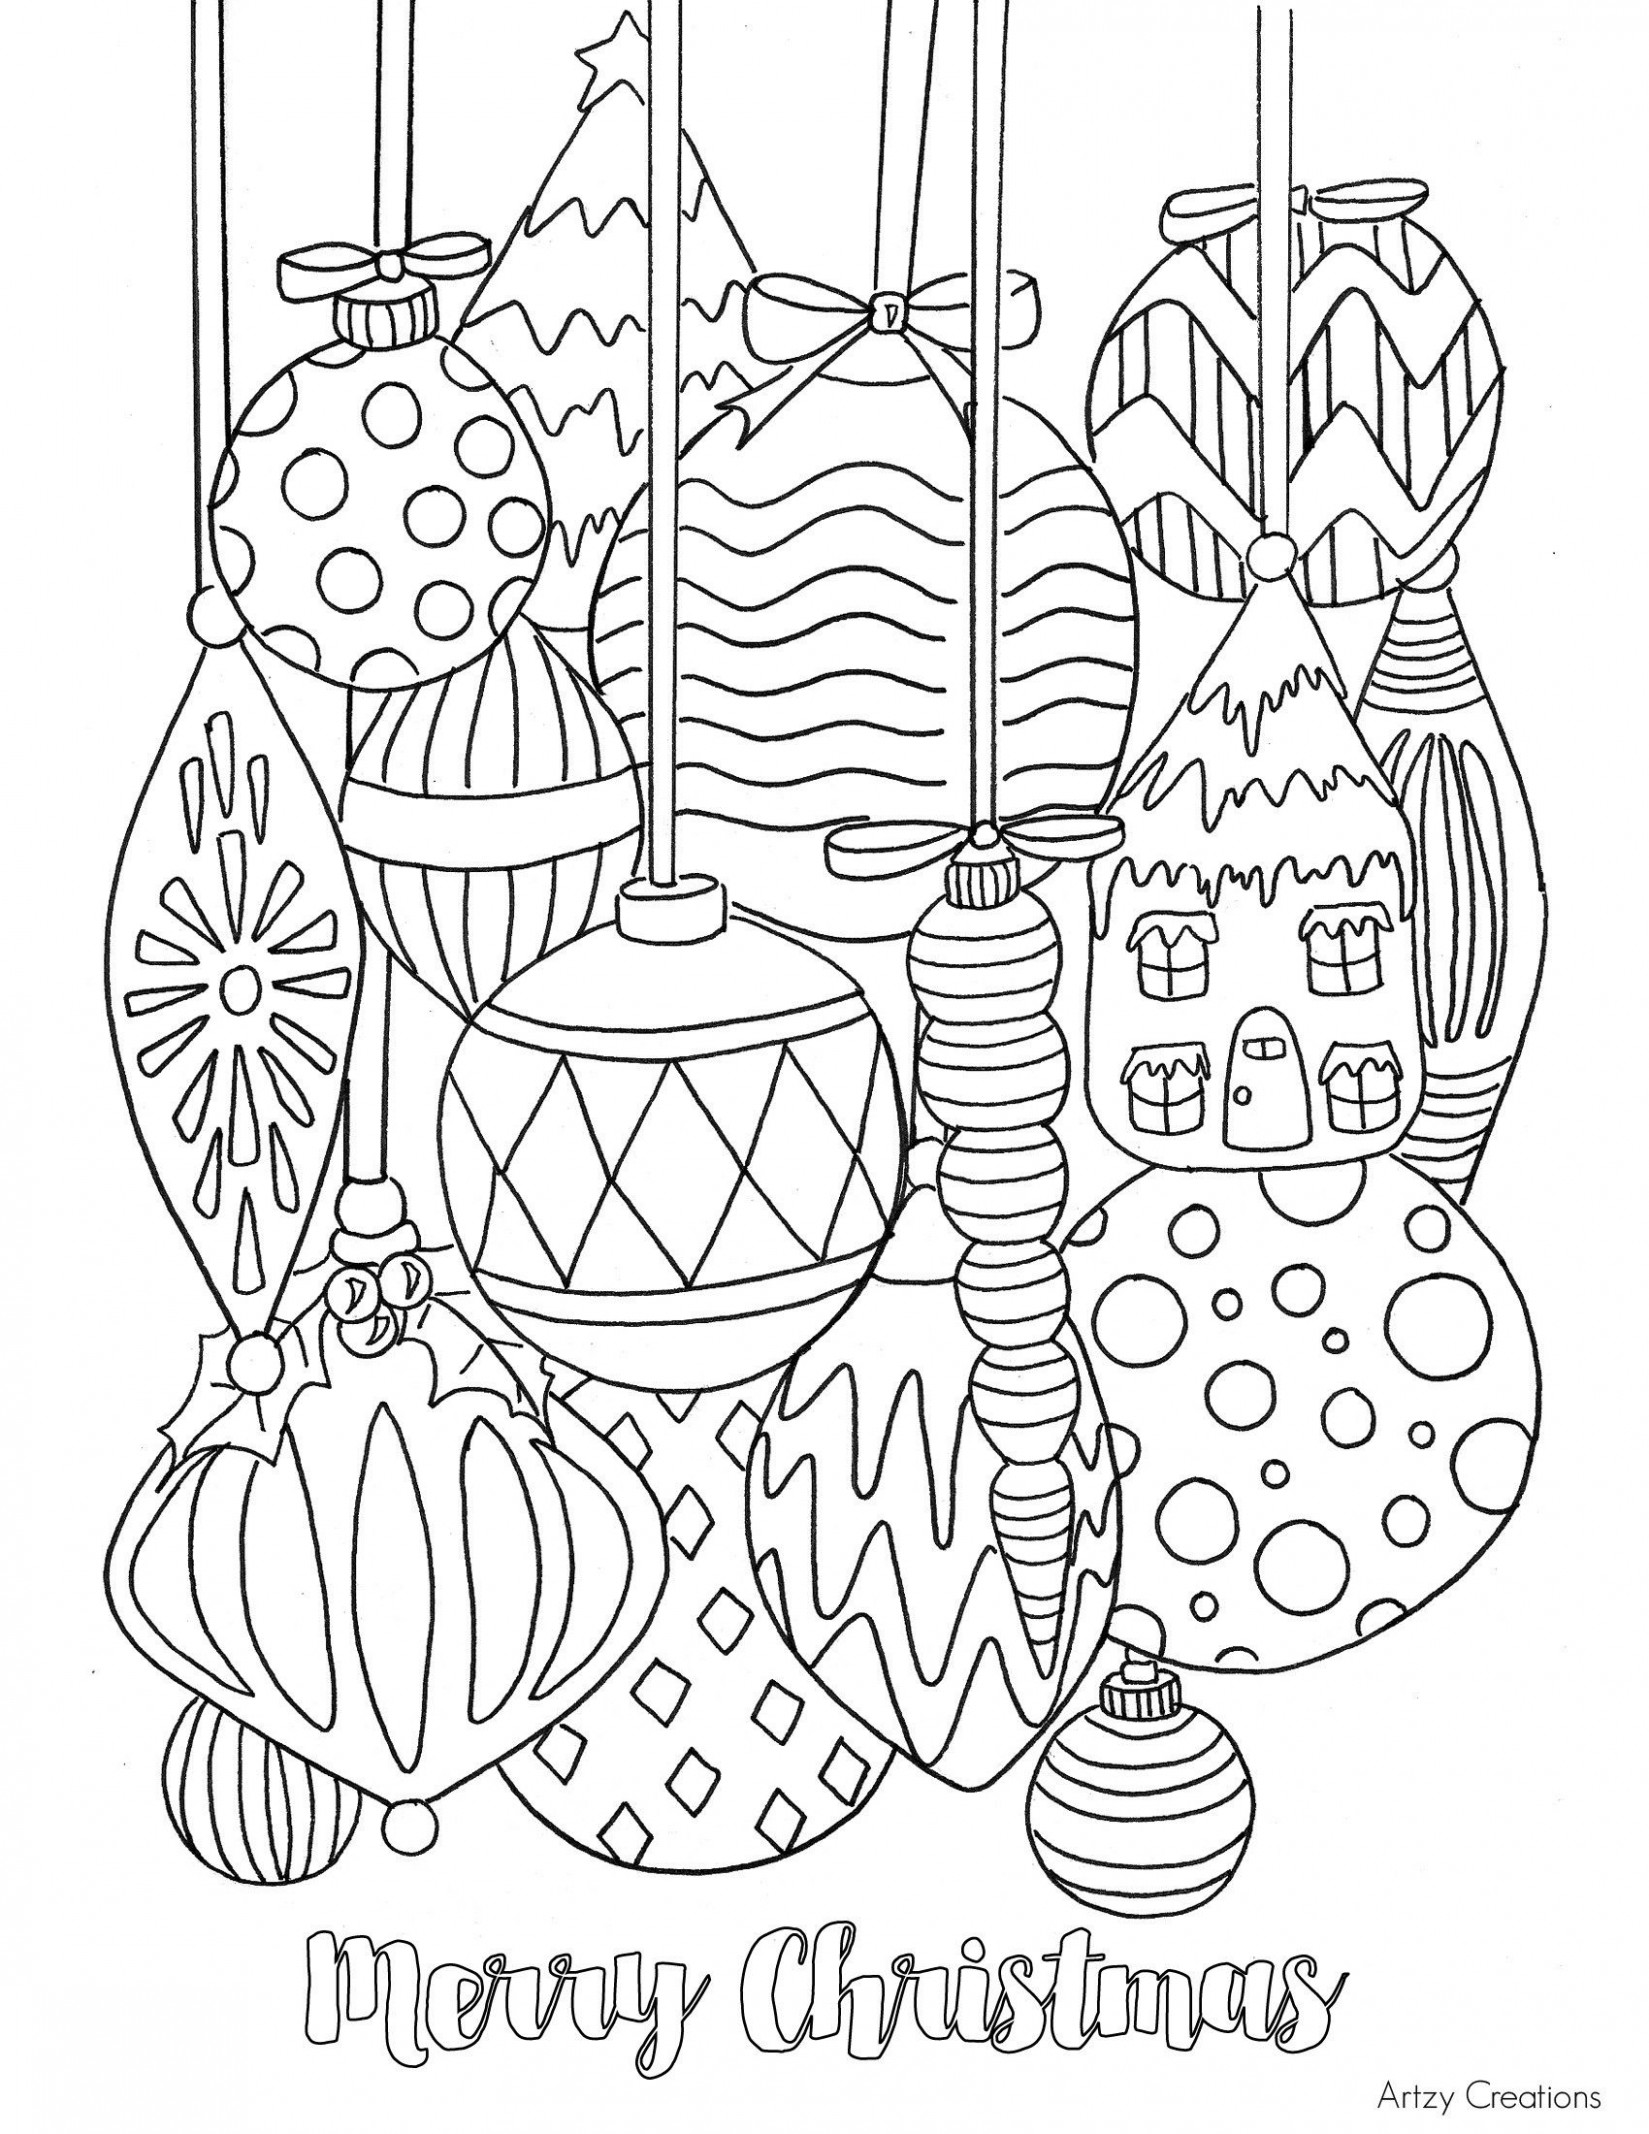 Printable Christmas Coloring Pages For Adults Christmas Coloring ..